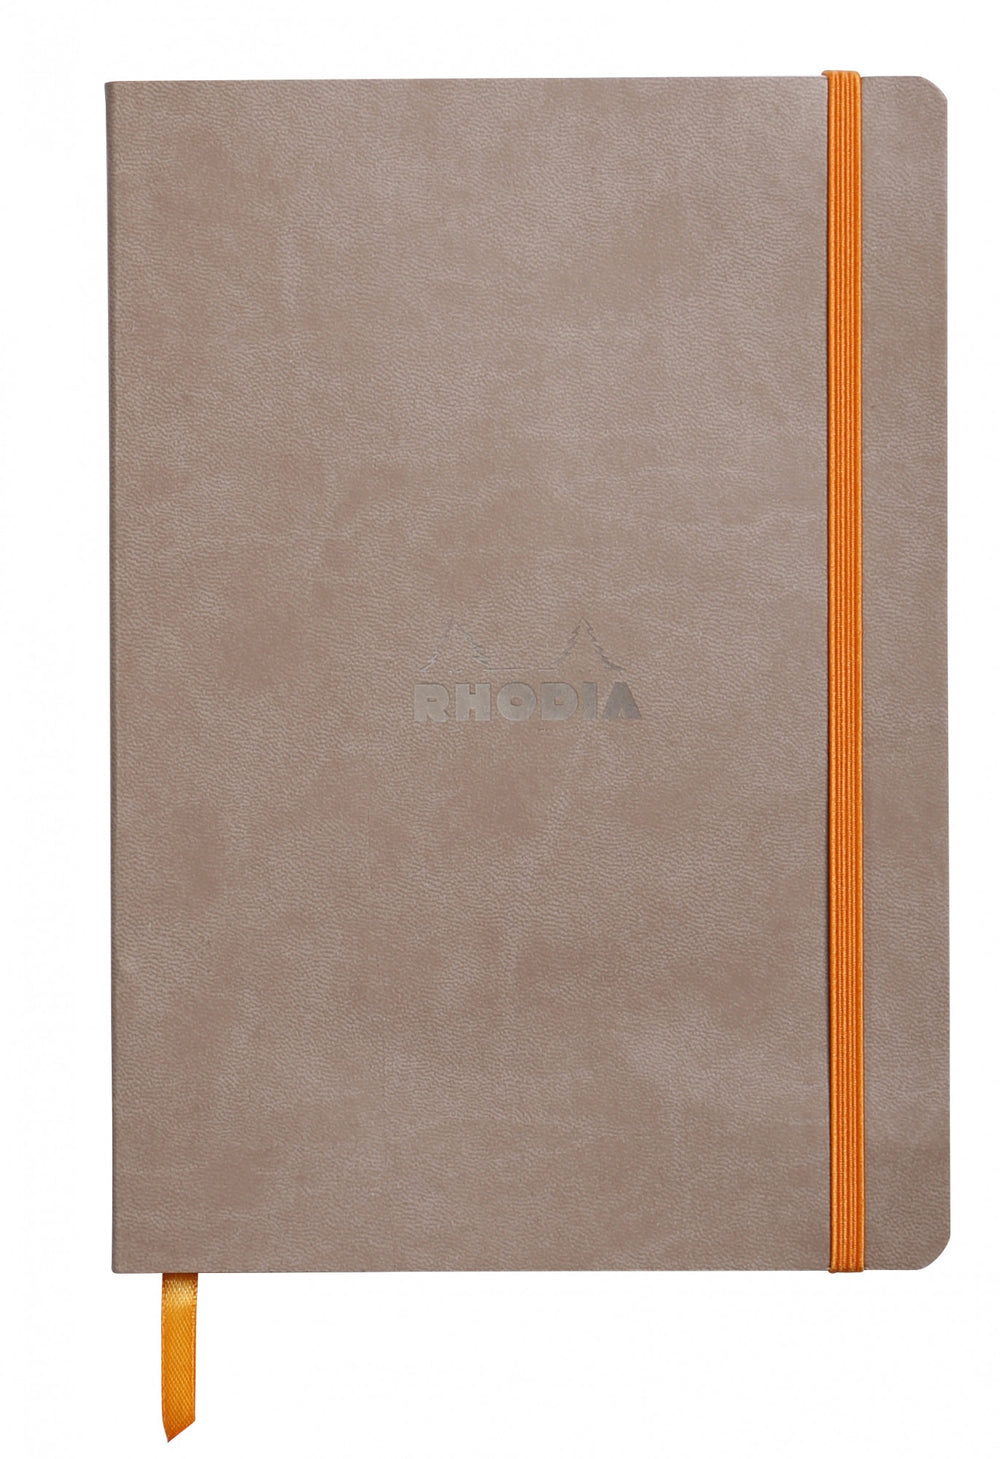 "Rhodia Soft Cover Rhodiarama 7.5"" x 9.75"" Notebook Taupe"